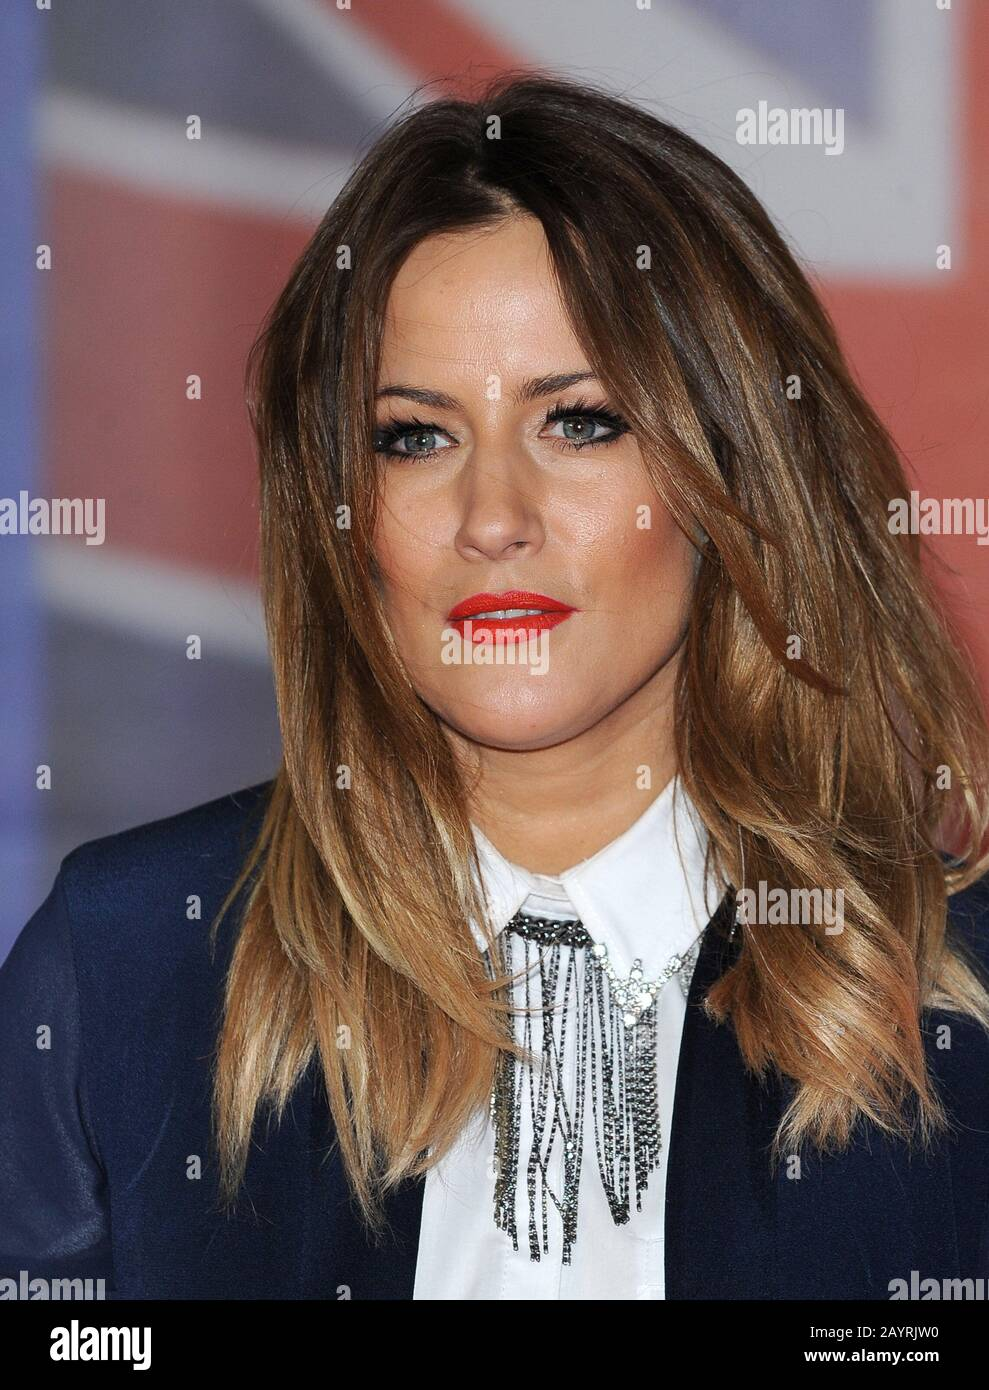 FILE: Caroline Flack found dead at 40 after committing suicide on Feb 14th. London, UK. 22nd Feb, 2012. LONDON, ENGLAND - FEBRUARY 21: Caroline Flack arrives at the BRIT Awards 2012 at O2 Arena on February 21, 2012 in London, England. Stock Photo